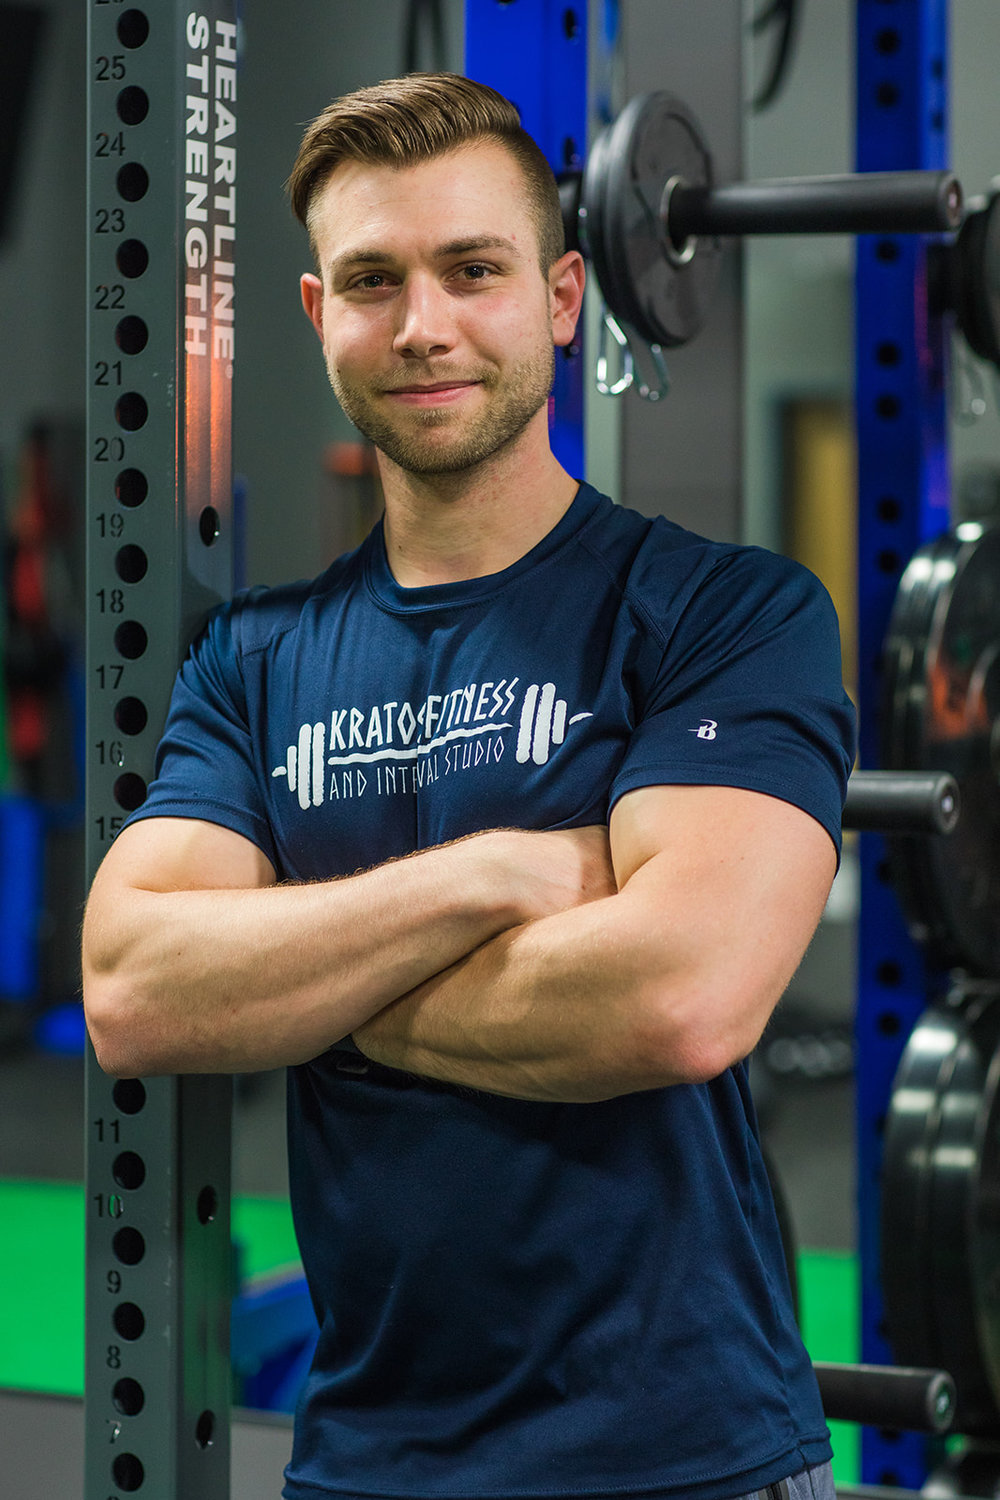 Brian Marple, Trainer - ACSM Certified Exercise Physiologist (EP-C); NSCA Certified Strength and Conditioning Specialist (CSCS); FMS Certified (Functional Movement Screen) B.S. in Exercise Science (Fitness Specialist)My educational requirements have exposed me to a variety of training environments including athletic performance, testing and evaluation, strength and conditioning as well as an internship in a personal training setting. This has allowed me to work with unique clients of all ages with goals ranging from strength, weight loss, weight gain, wellness, and athletic conditioning. Everyone is different. Therefore, as a trainer, I believe it is my job to individualize each program to tailor fit the needs, goals, and abilities of each person I train and be able to modify or progress those programs as their fitness levels evolve.